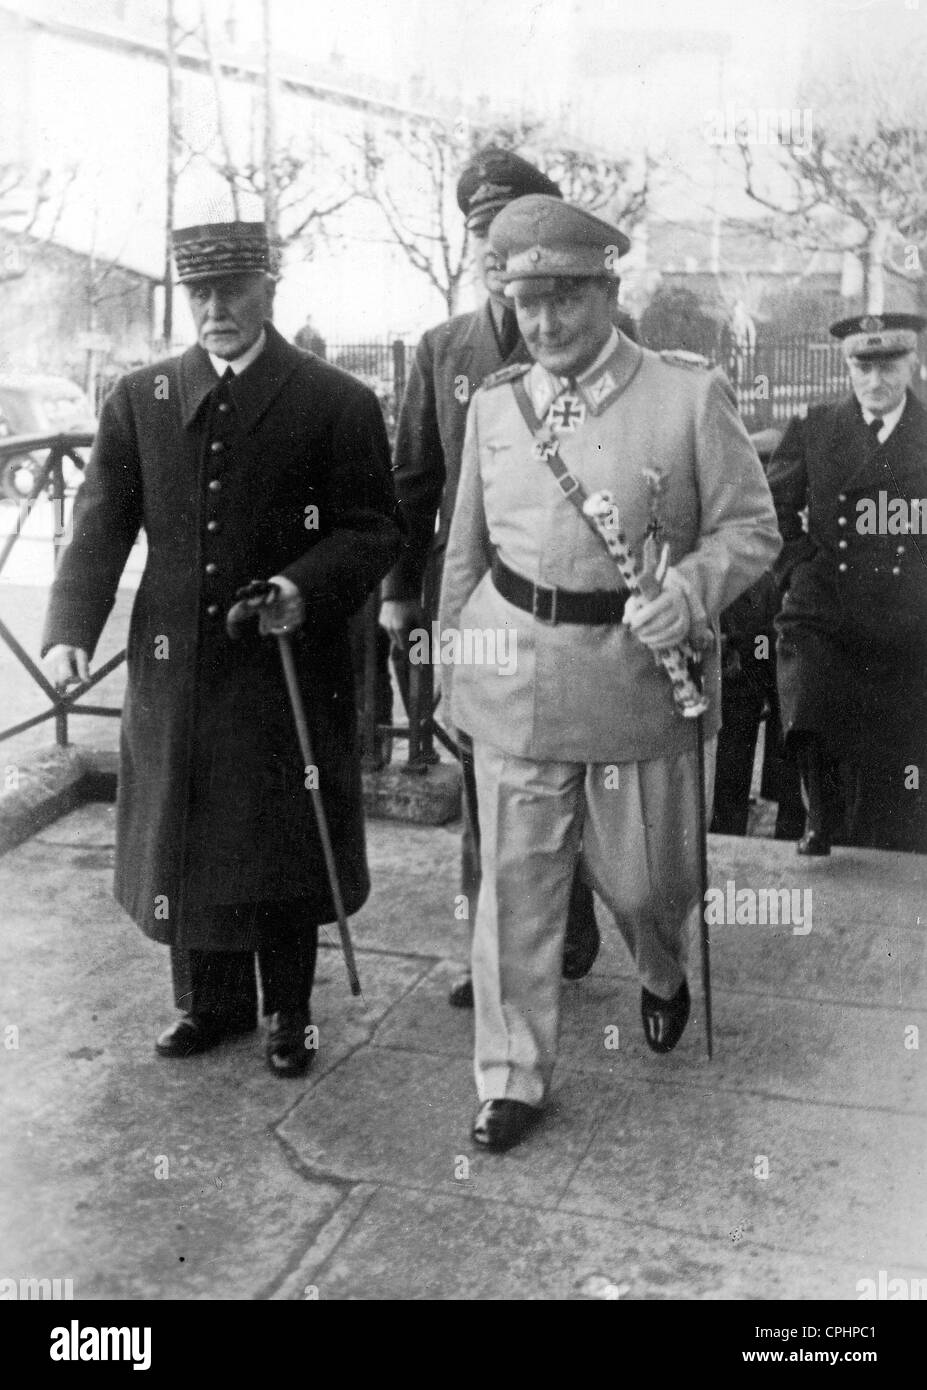 Hermann Goering and Marshal Petain in St. Florentin, France, December 1941 (b/w photo) - Stock Image